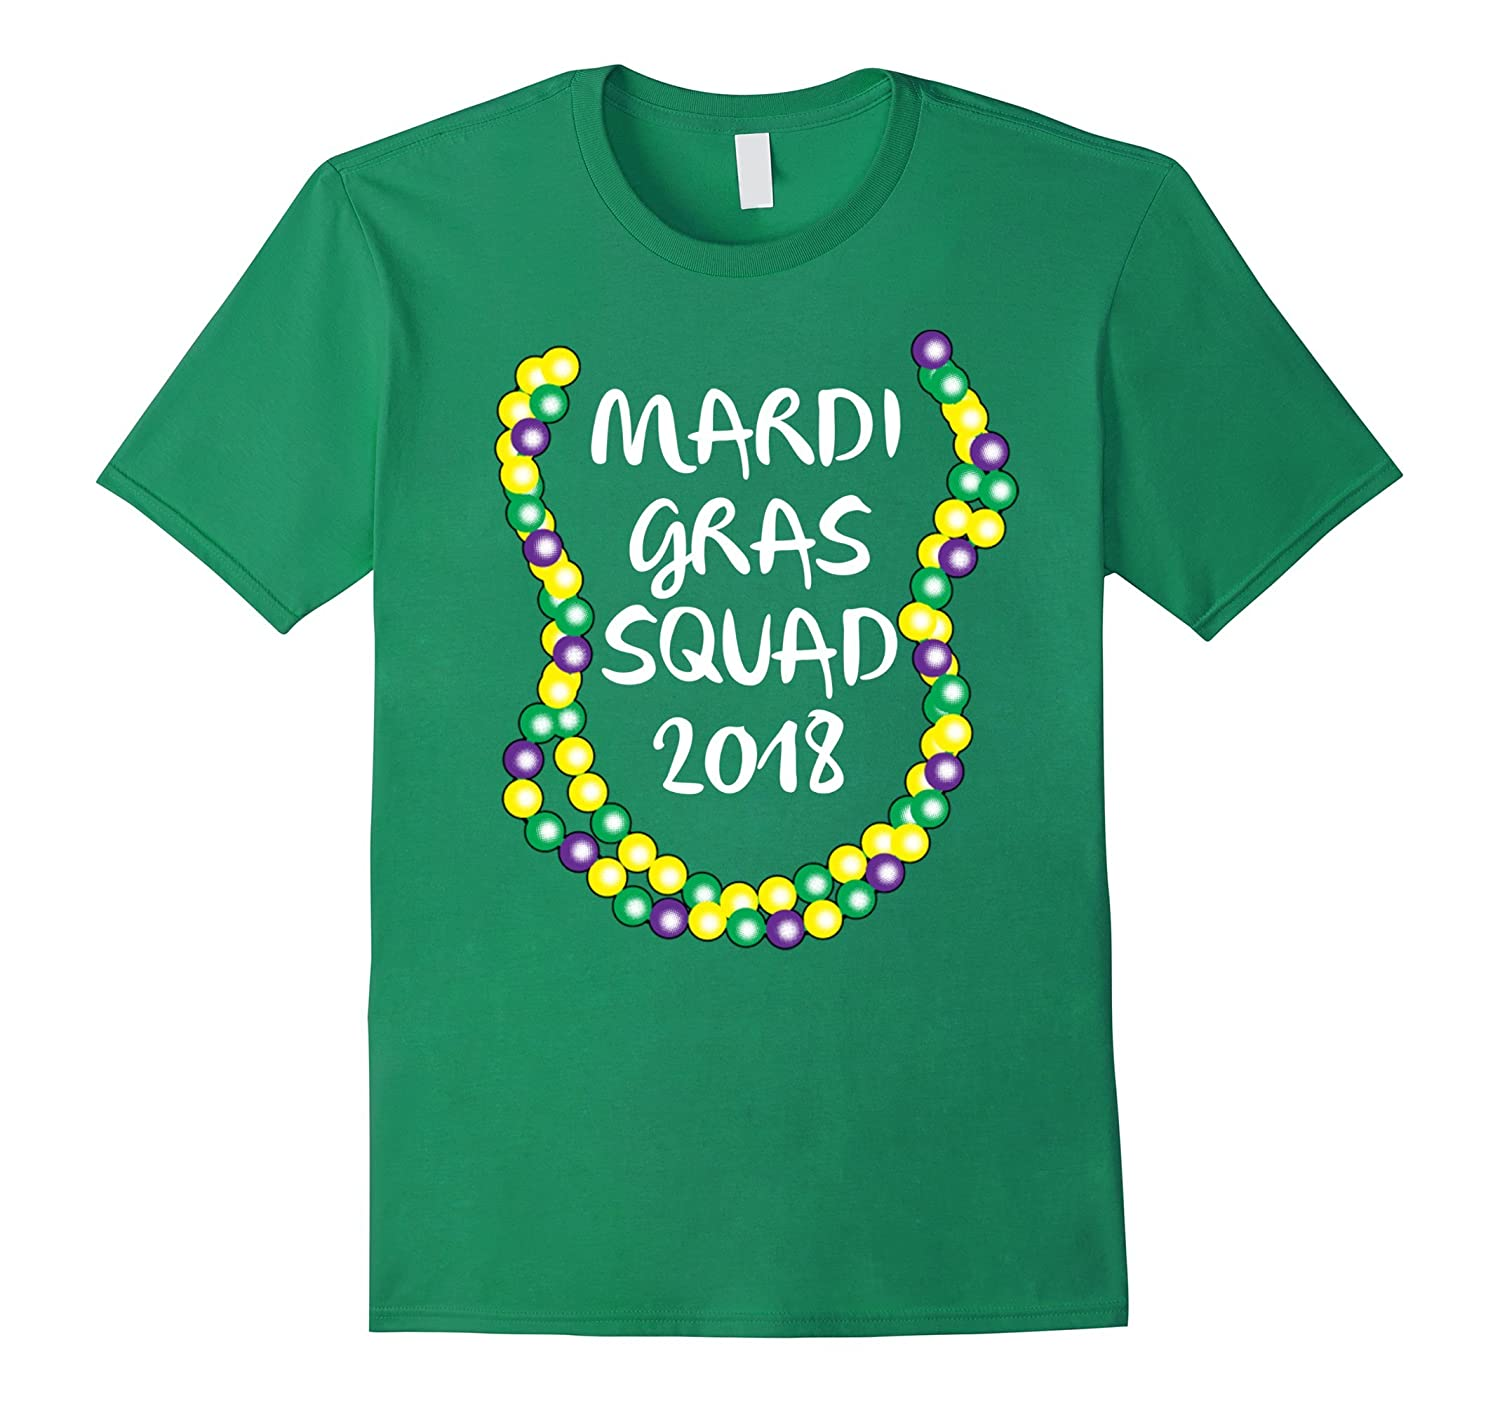 Mardi Gras Squad 2018 w/ Beads - Mardi Gras Shirt for Groups-RT